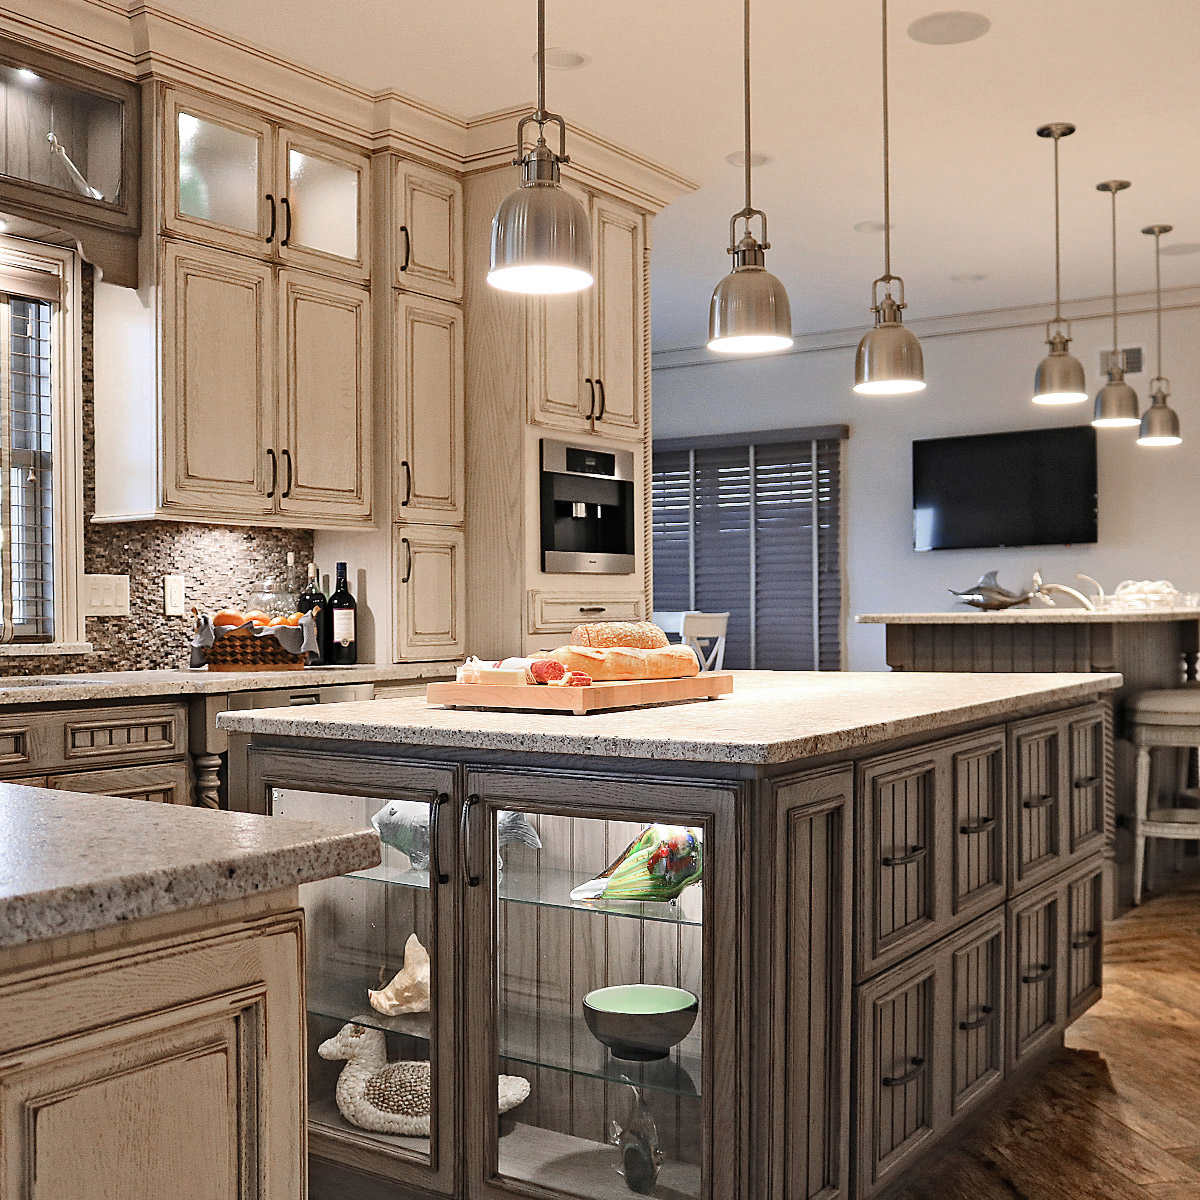 Full Custom Cabinets By Tuscan Hills Kitchens Baths Ships In 6 8 Weeks